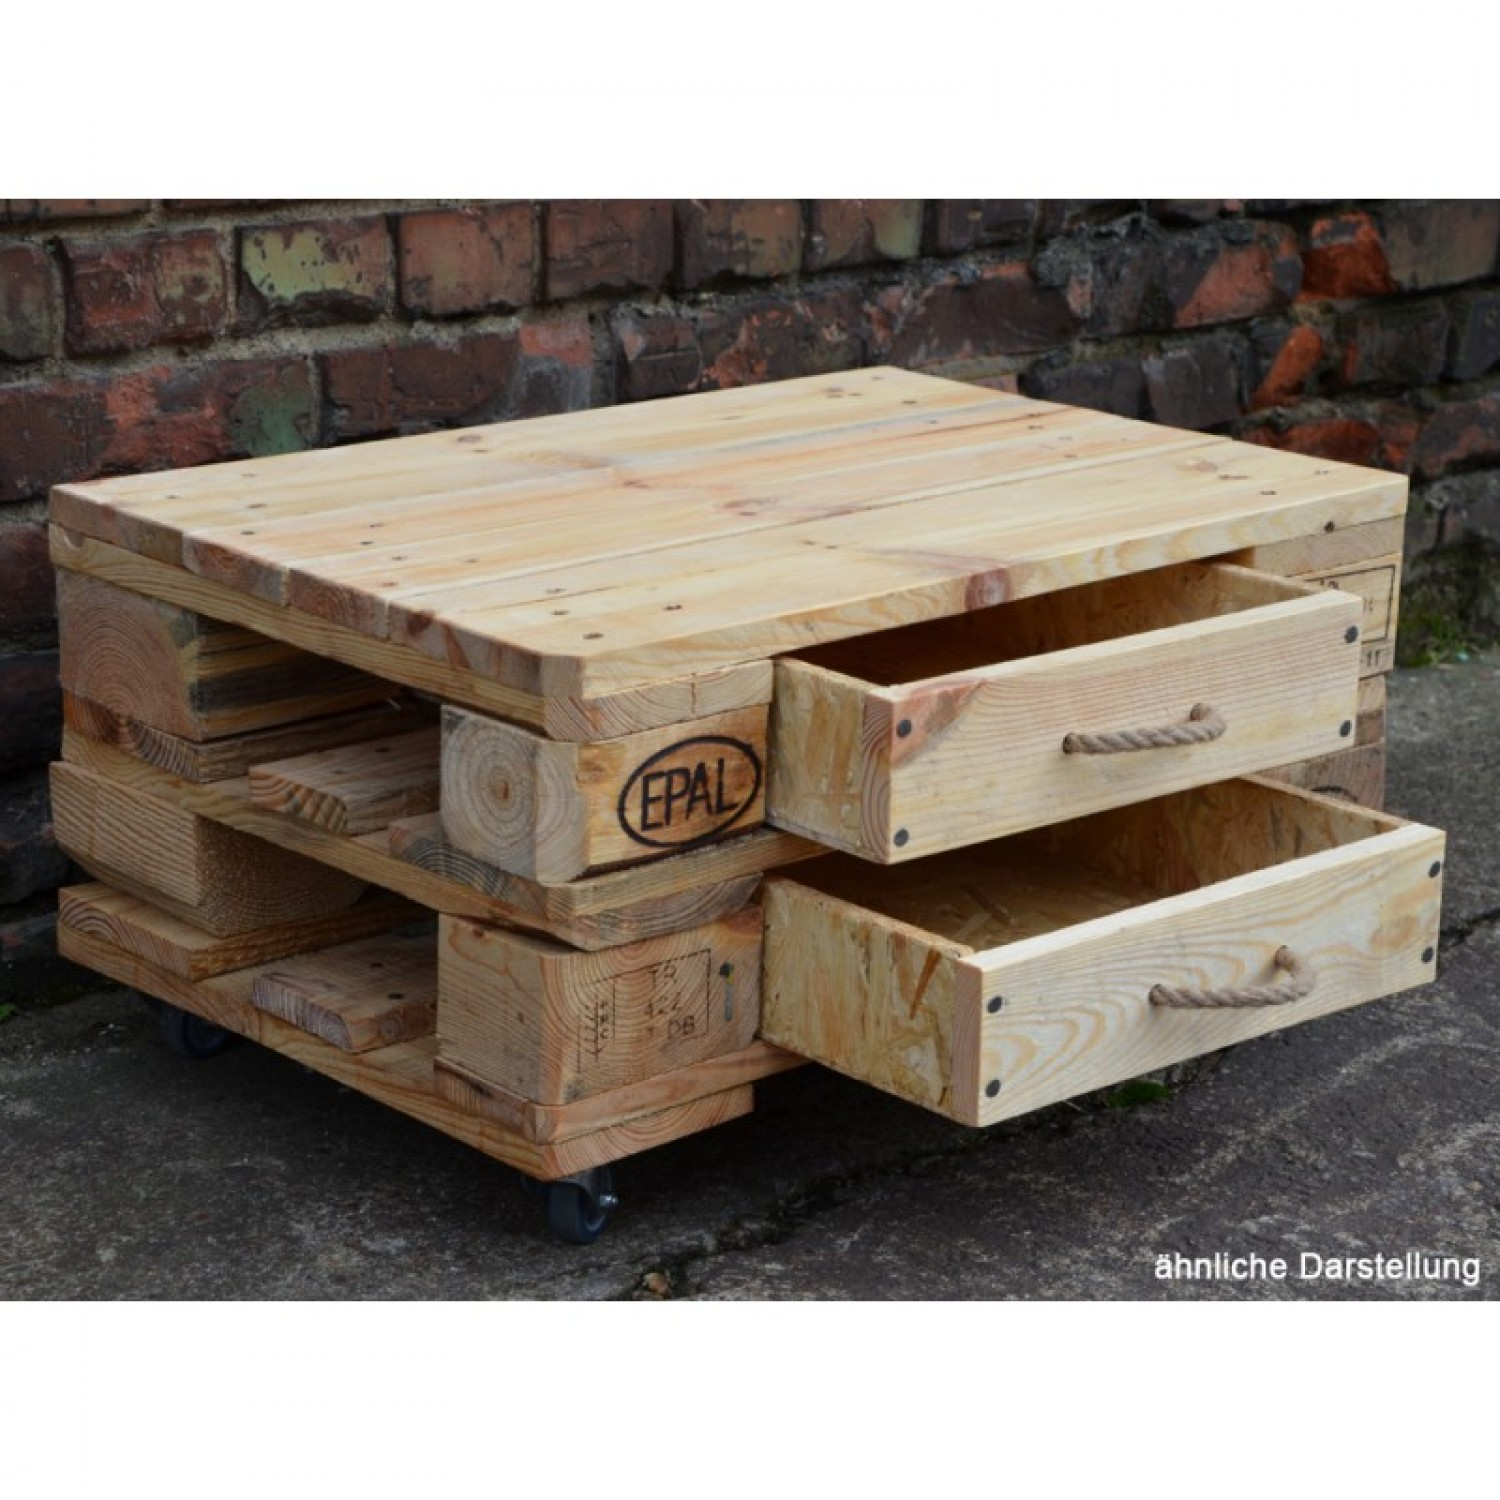 Upcycling Chest of Drawers made of Euro Paletts